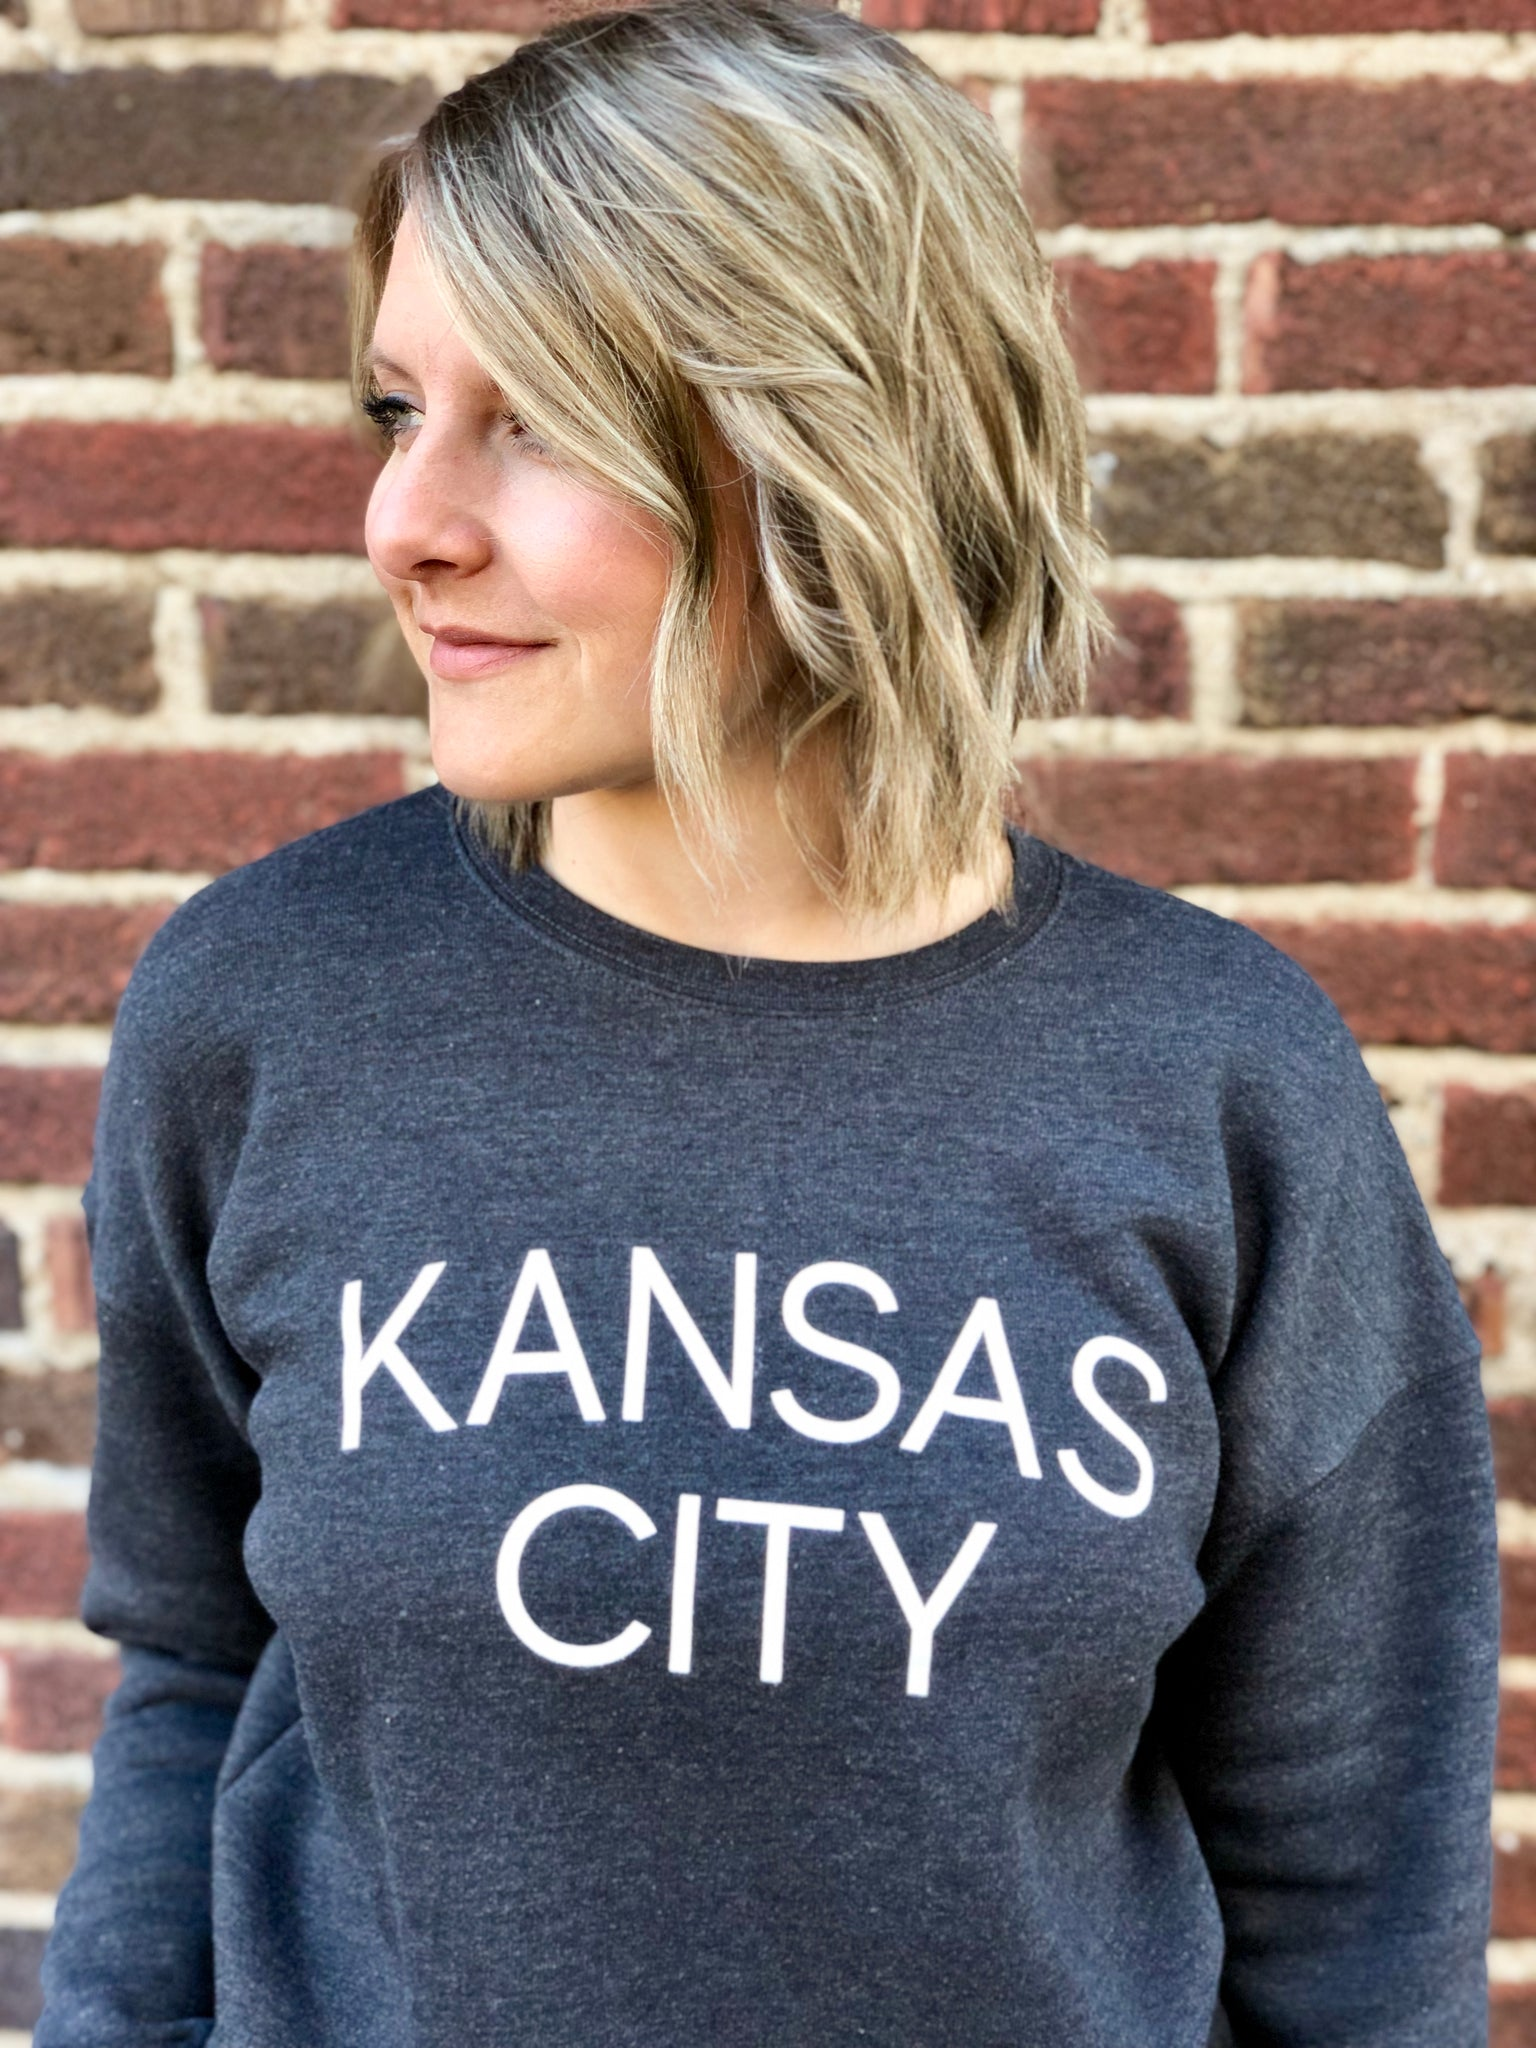 Kansas City Sweatshirt - Dark Gray // Light Font